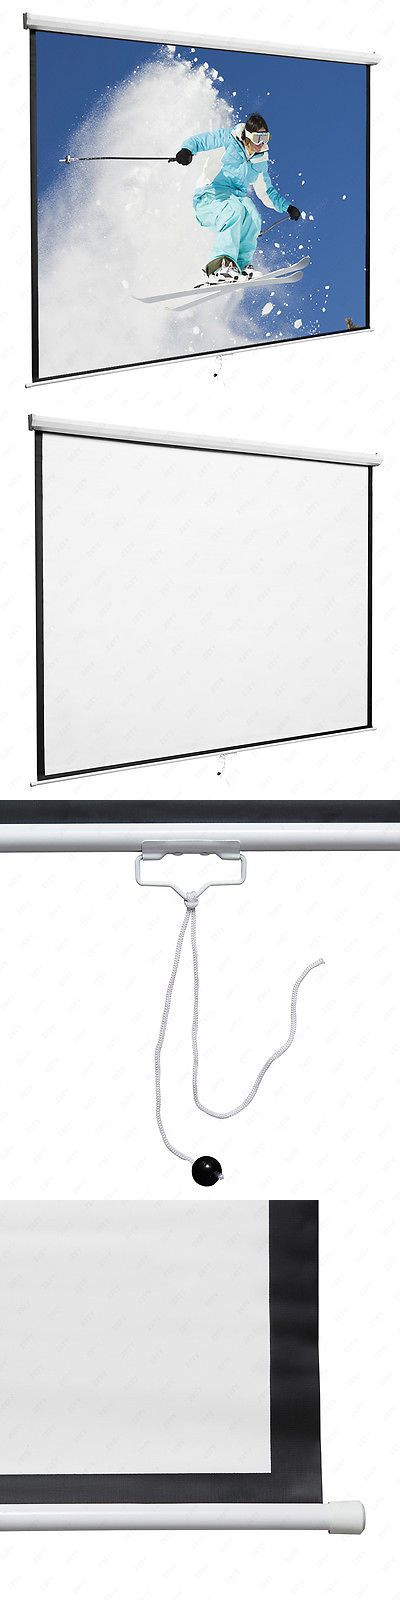 Projection Screens and Material: 120 1:1 Portable Manual Projector Screen Pull Down Screen Home Movie Theater -> BUY IT NOW ONLY: $39.9 on eBay!